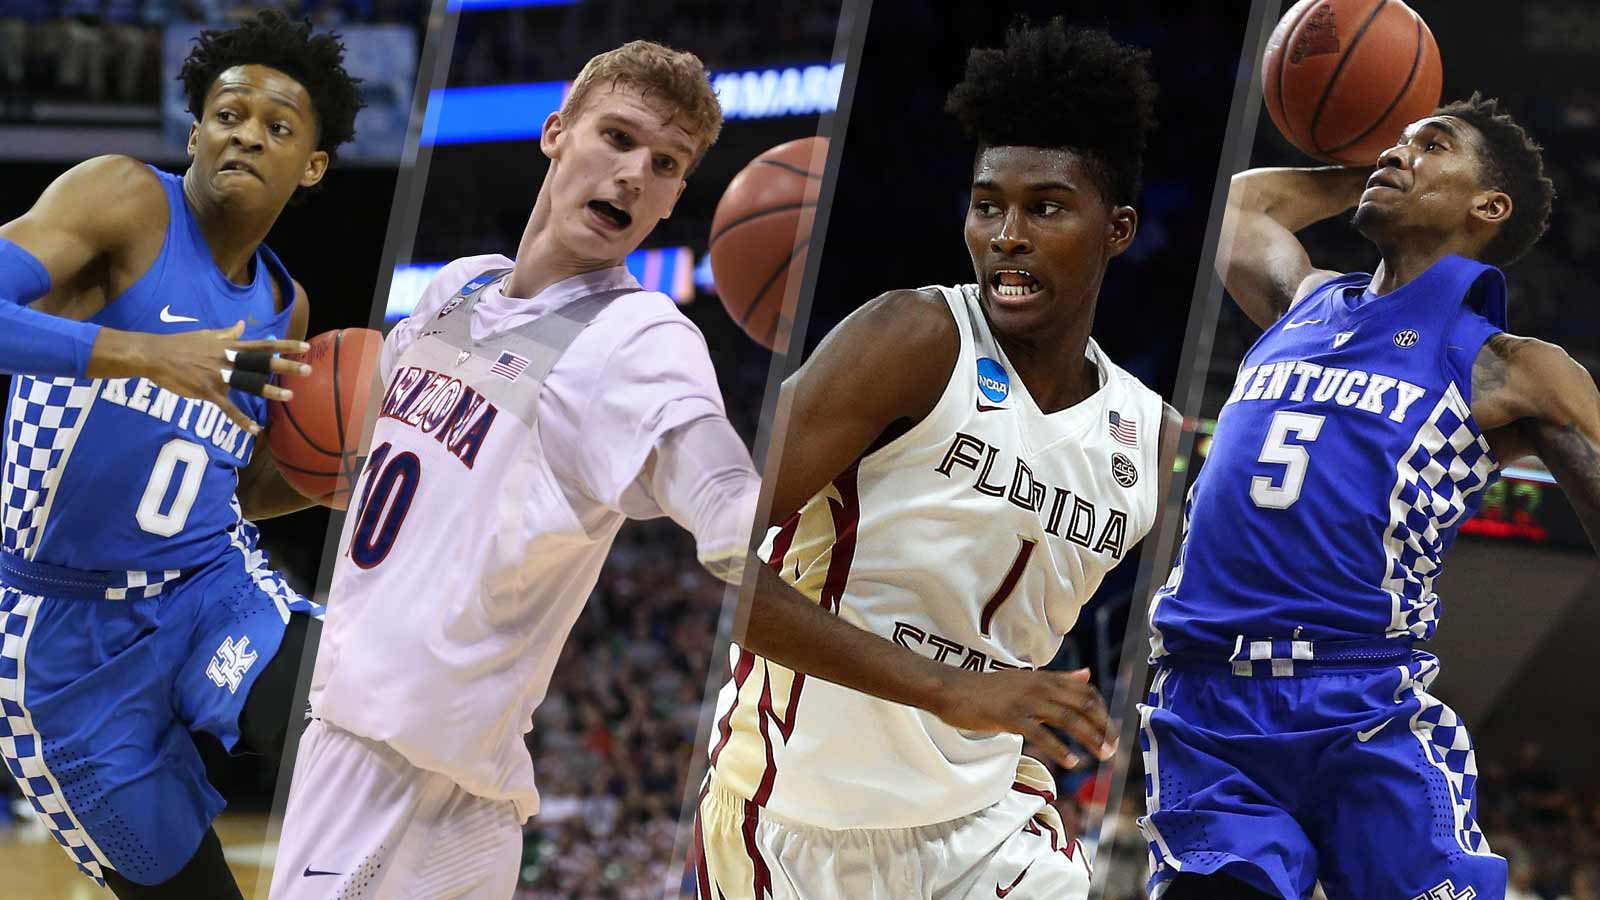 De'Aaron Fox, Lauri Markkanen, Jonathan Isaac and Malik Monk are possible options for the Minnesota Timberwolves, who pick seventh in the upcoming NBA Draft.